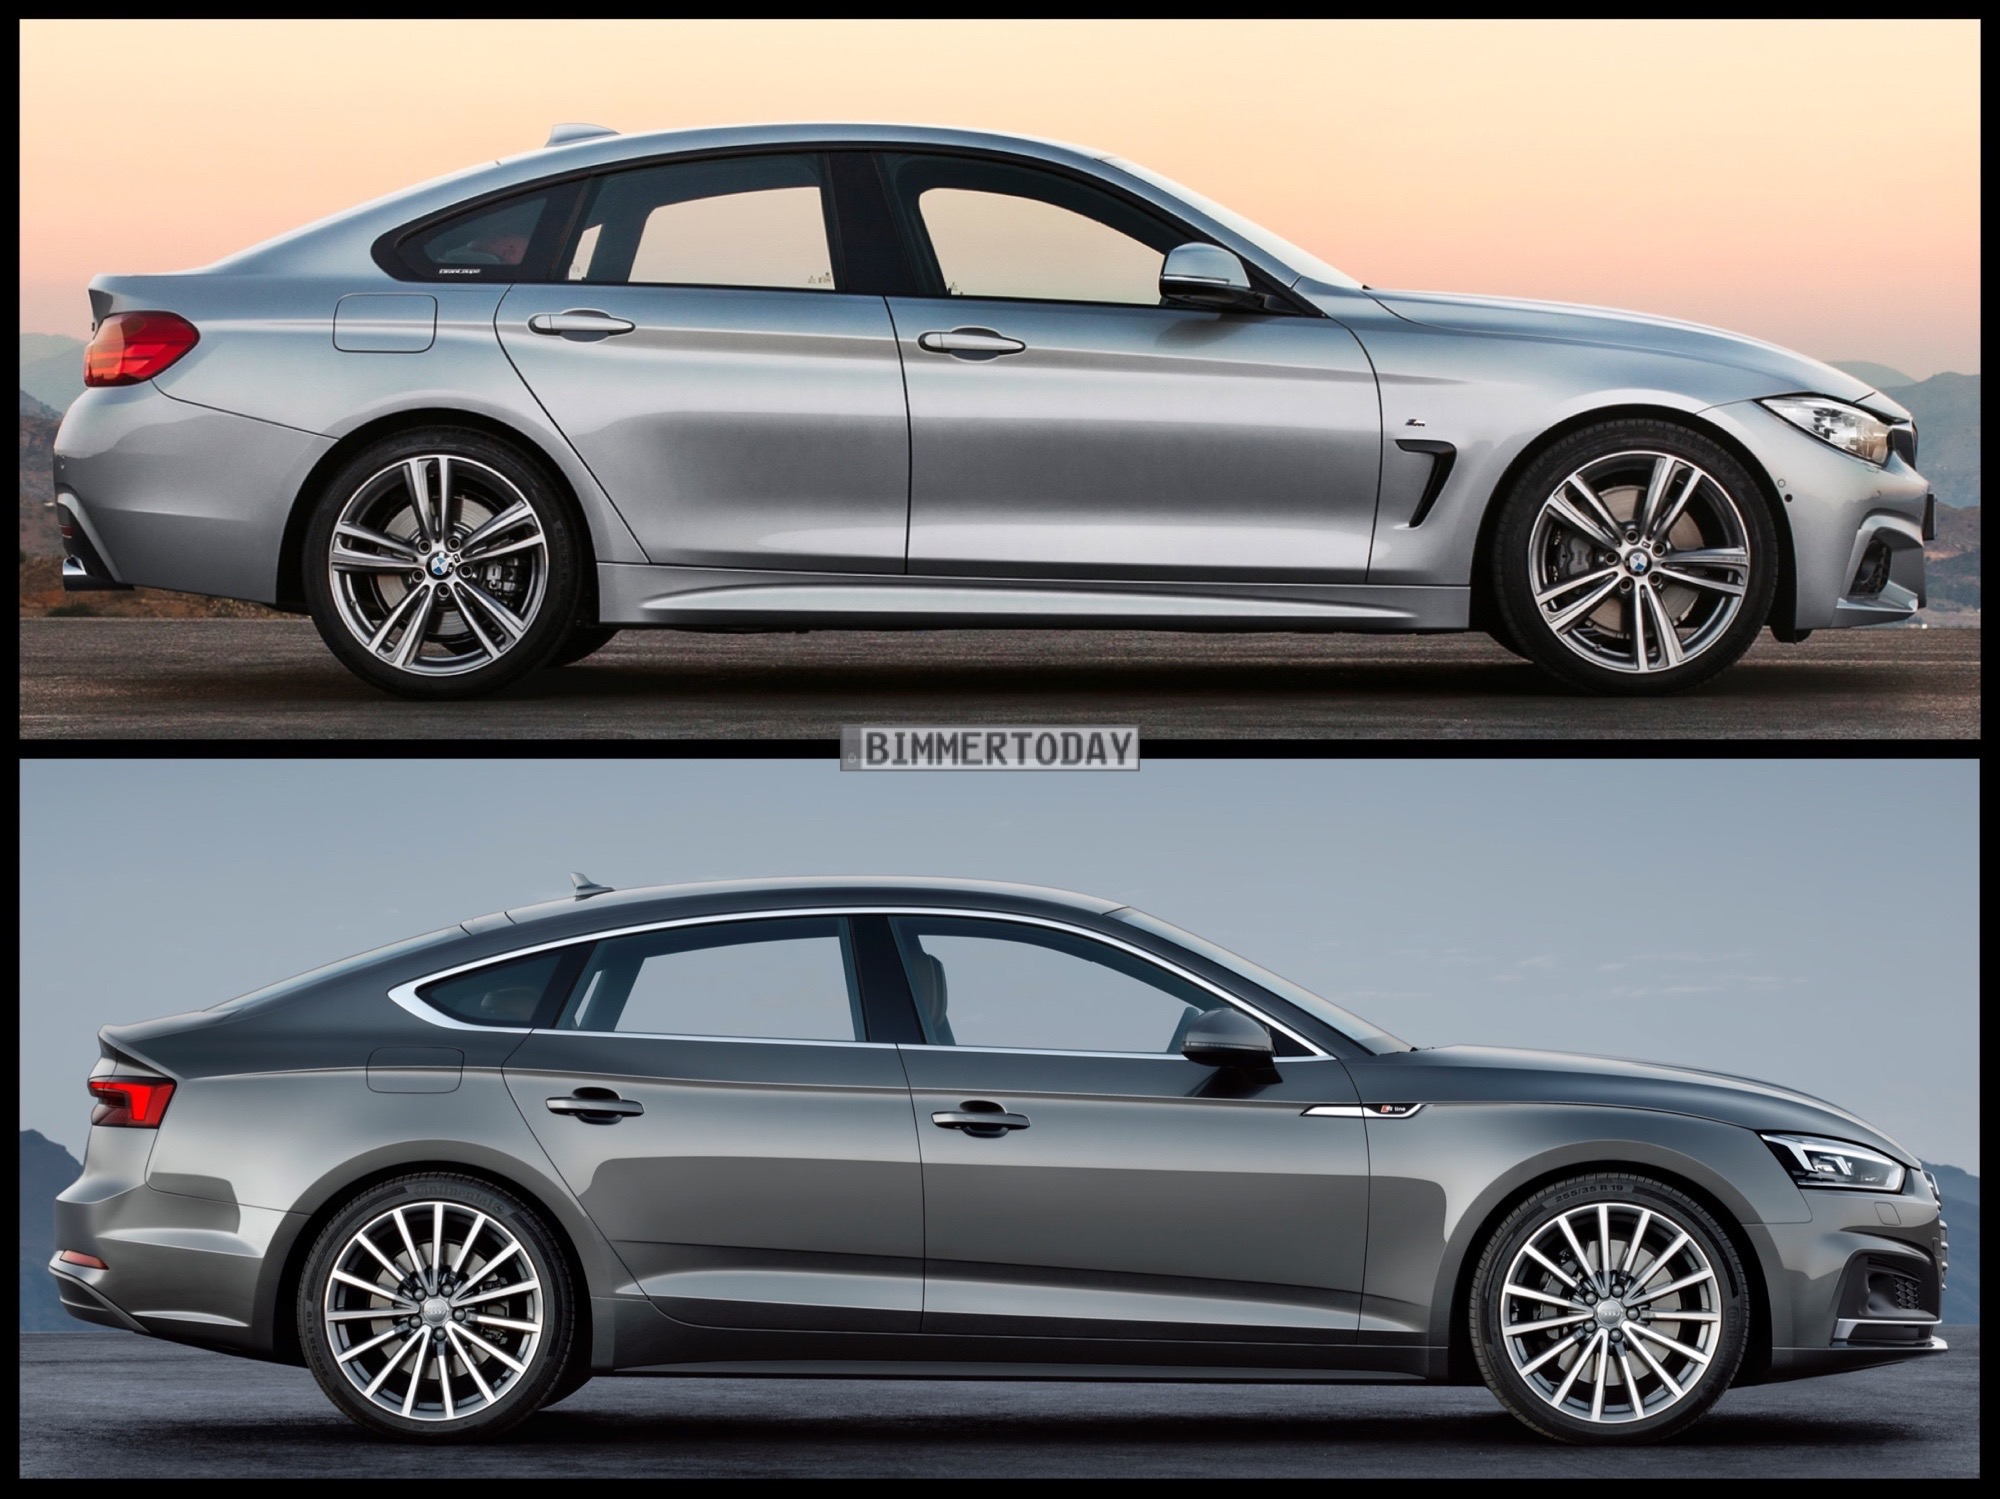 The Audi A5 Sportback Finally Debuts Which Is Better Car But For Now If Both Were Presented To Us With Keys It D Be A Hard Choice Make